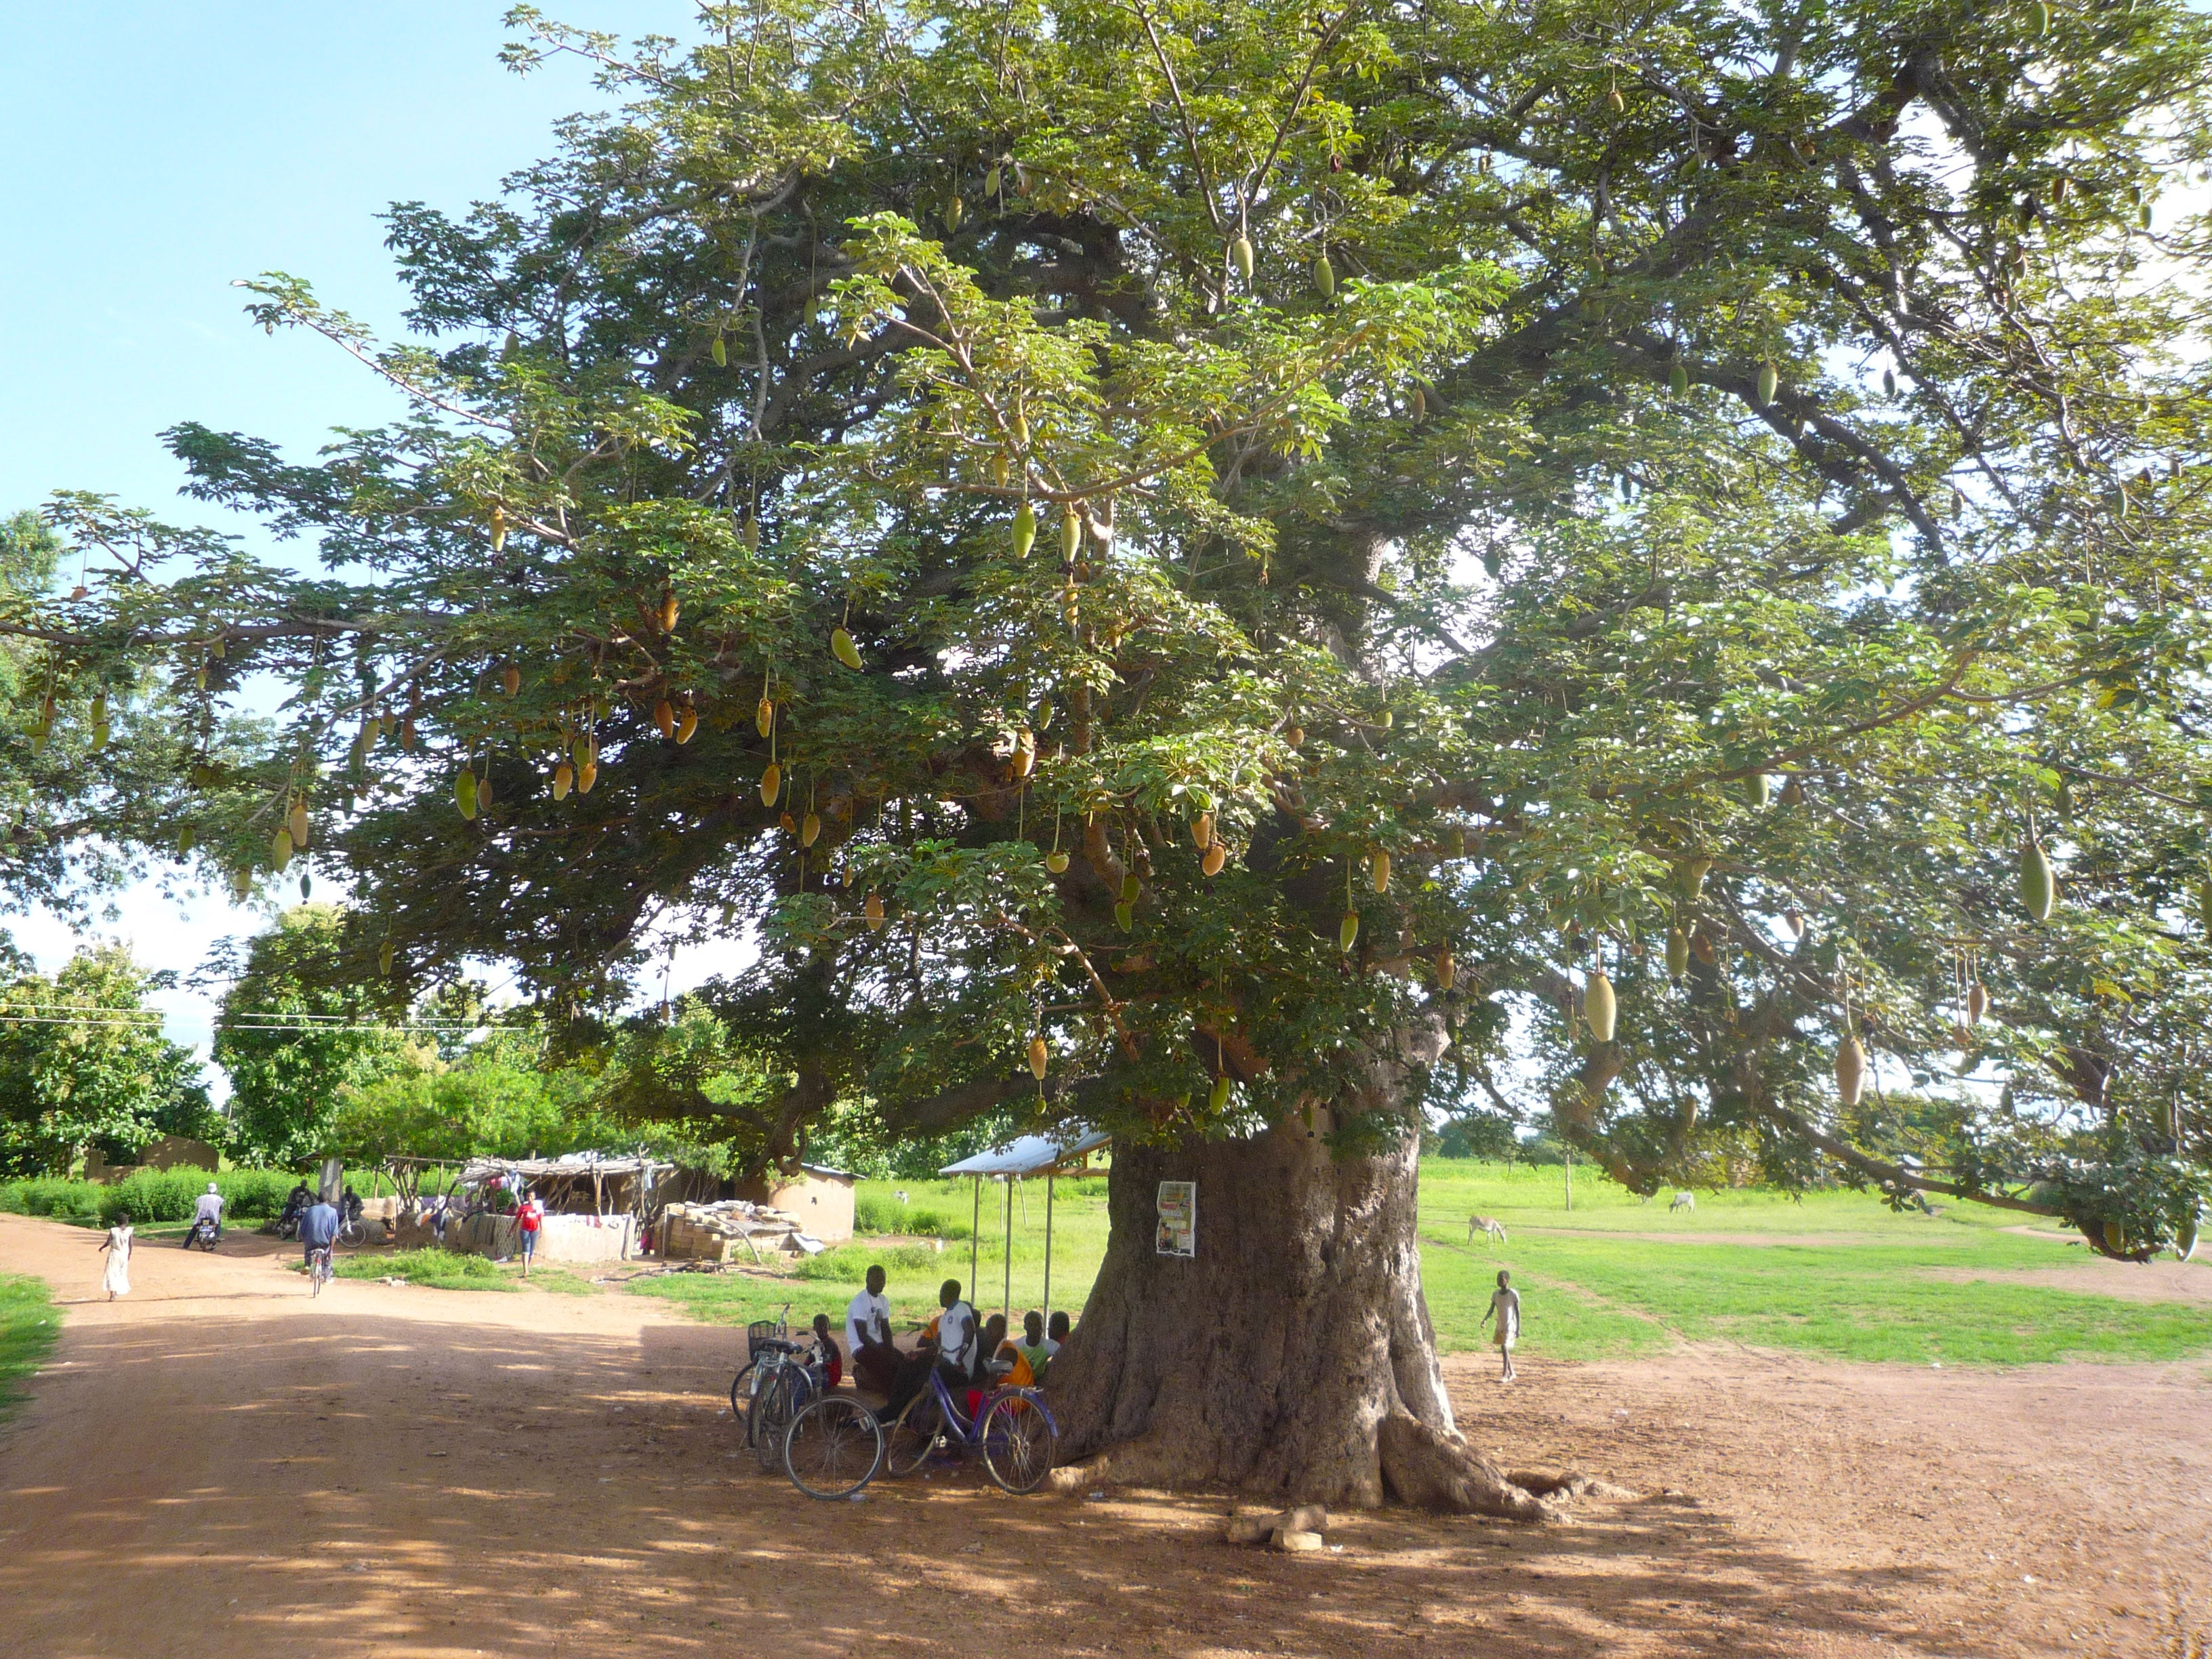 Baobab tree, near Paga Upper East Ghana where Aduna's supply chain is based